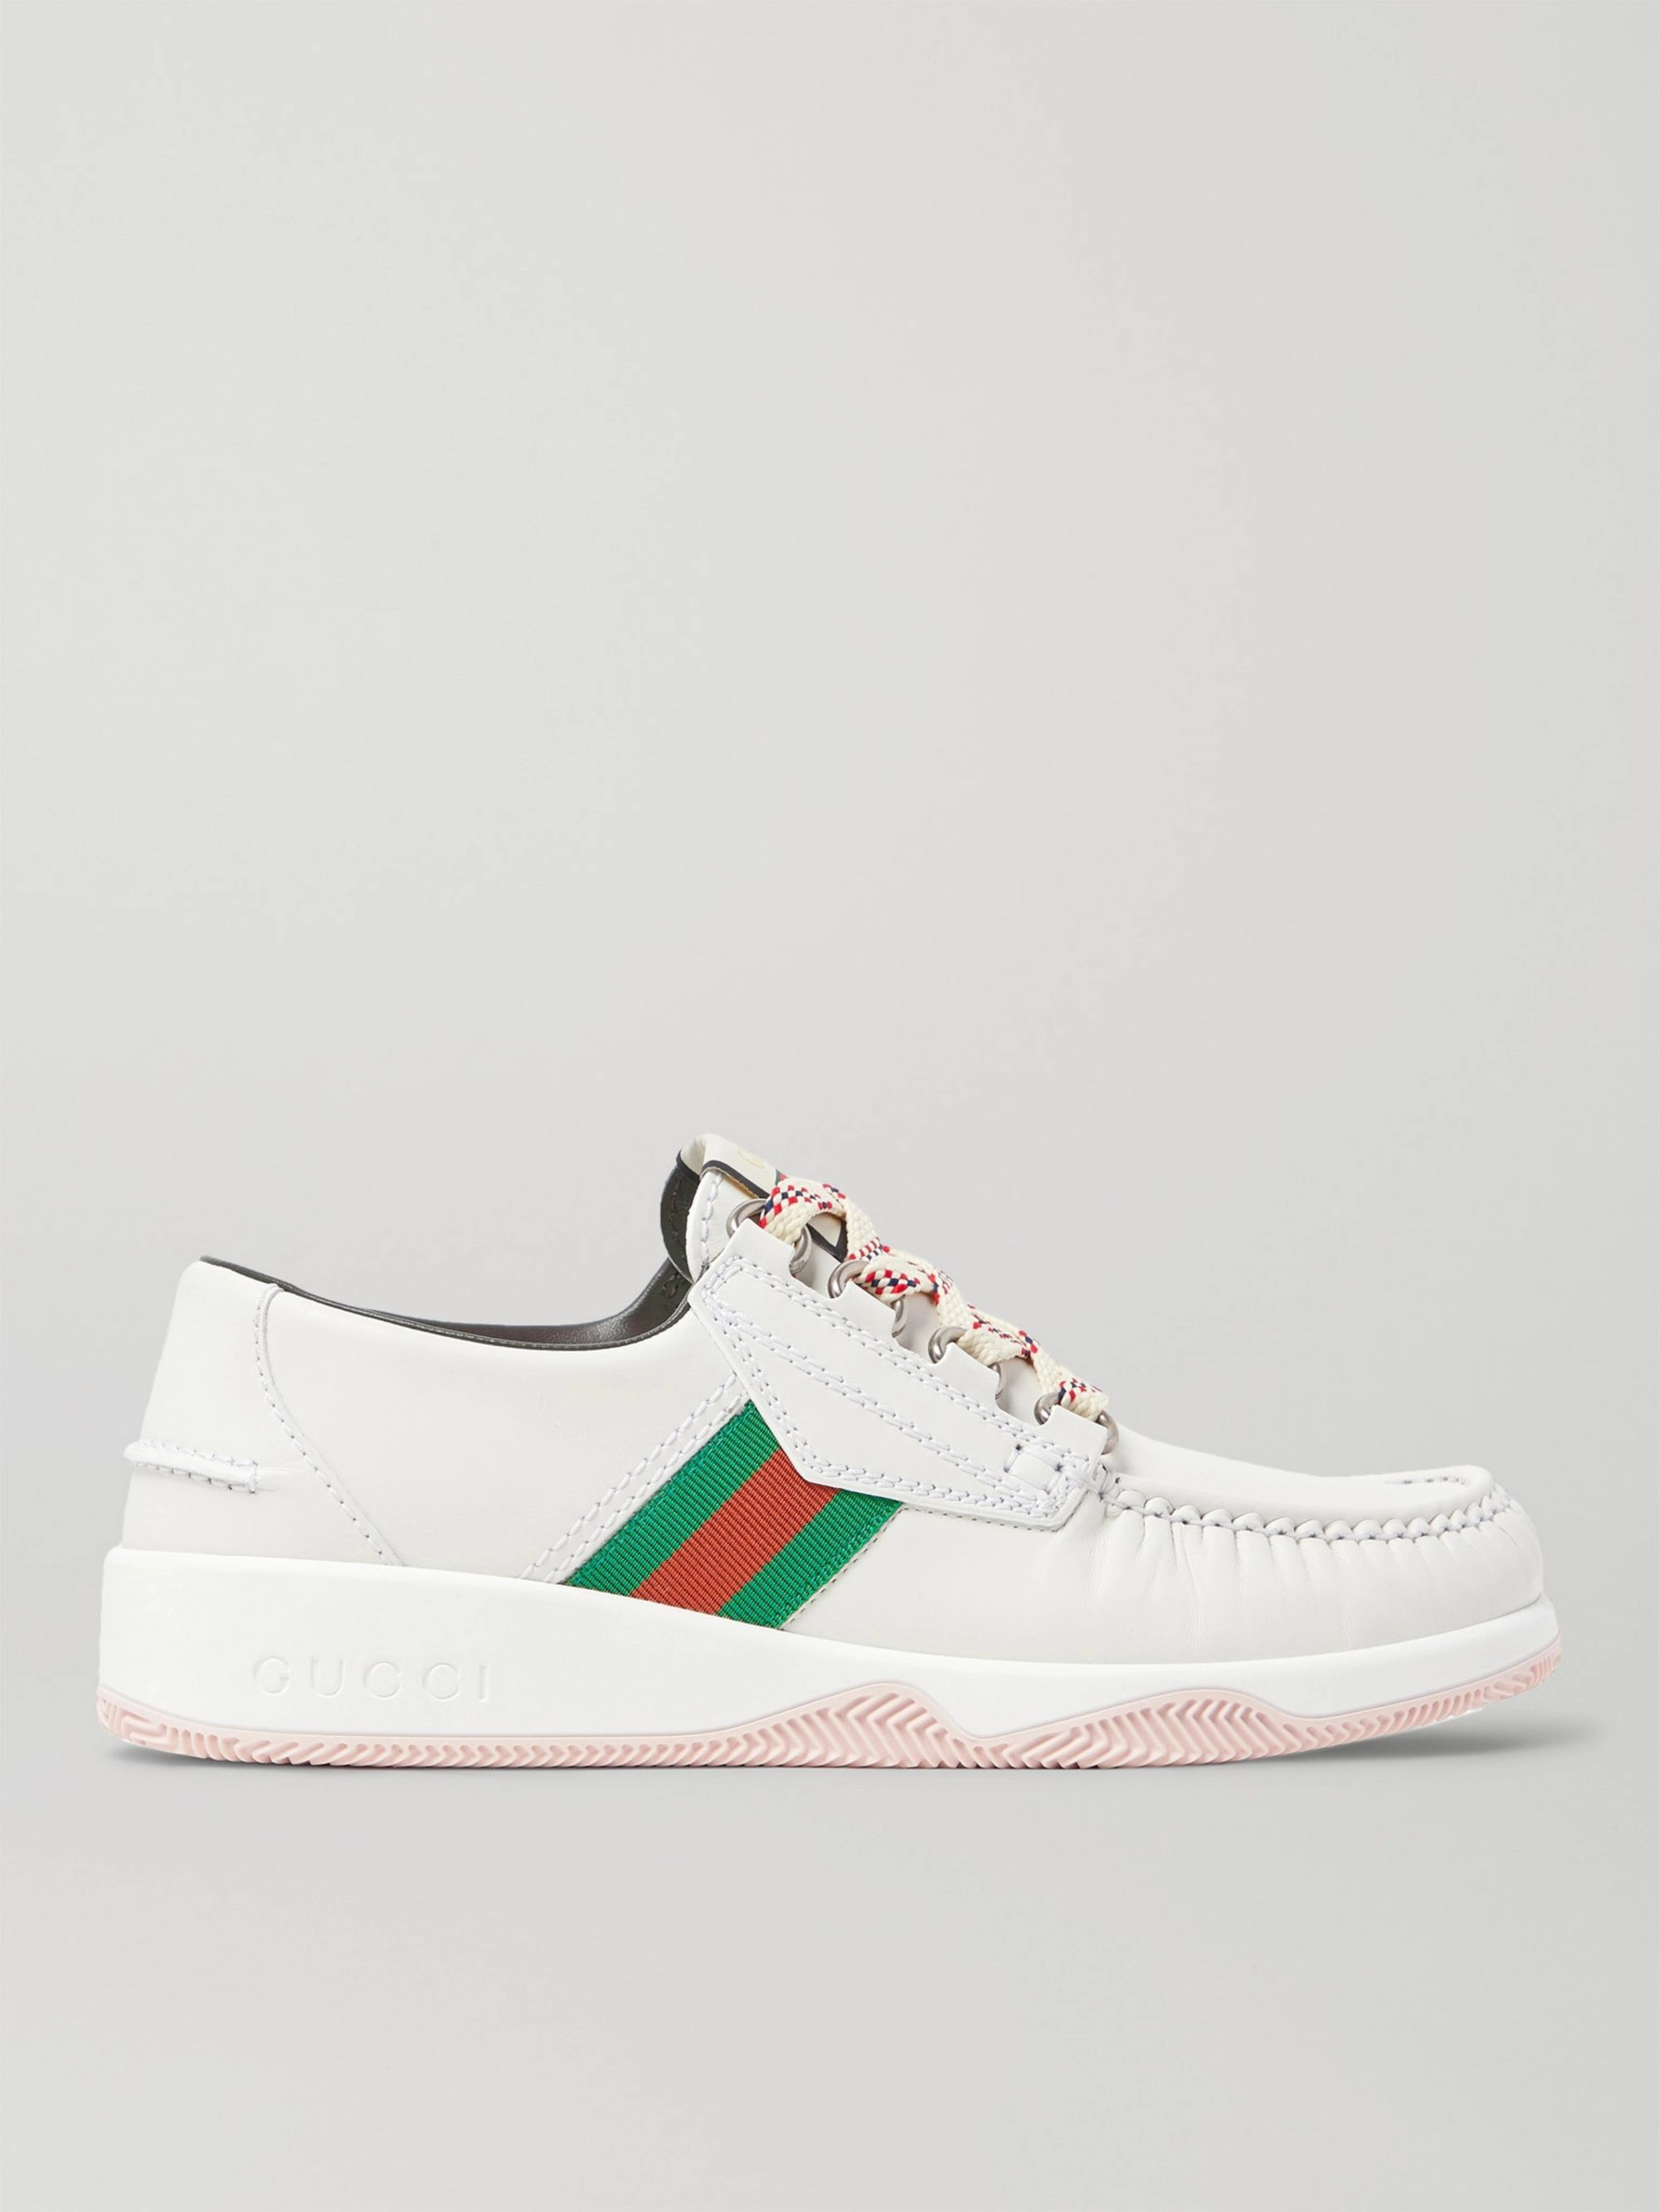 Gucci Striped Webbing-Trimmed Leather Sneakers